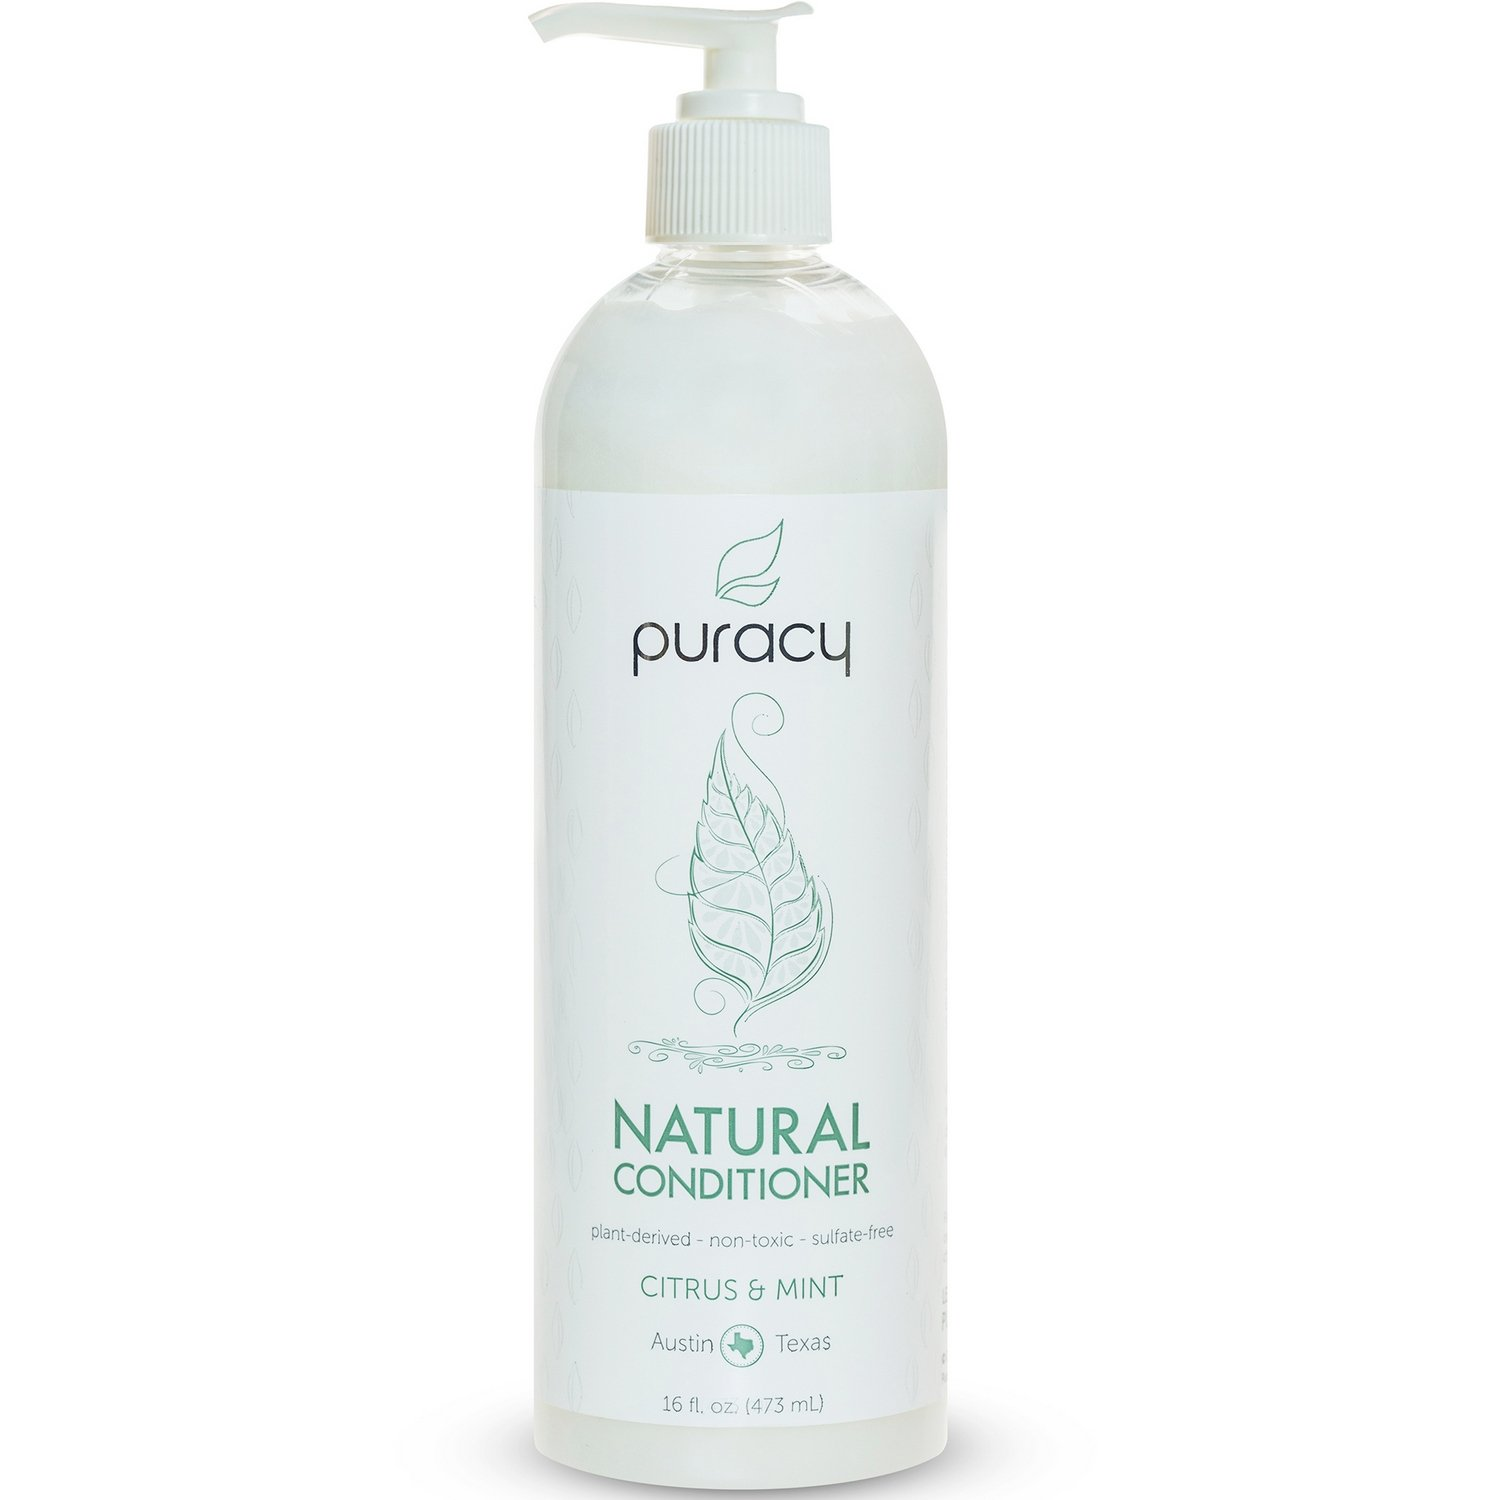 Puracy Natural Daily Sulfate-Free Hair Conditioner, Citrus & Mint, 16 Fluid Ounce